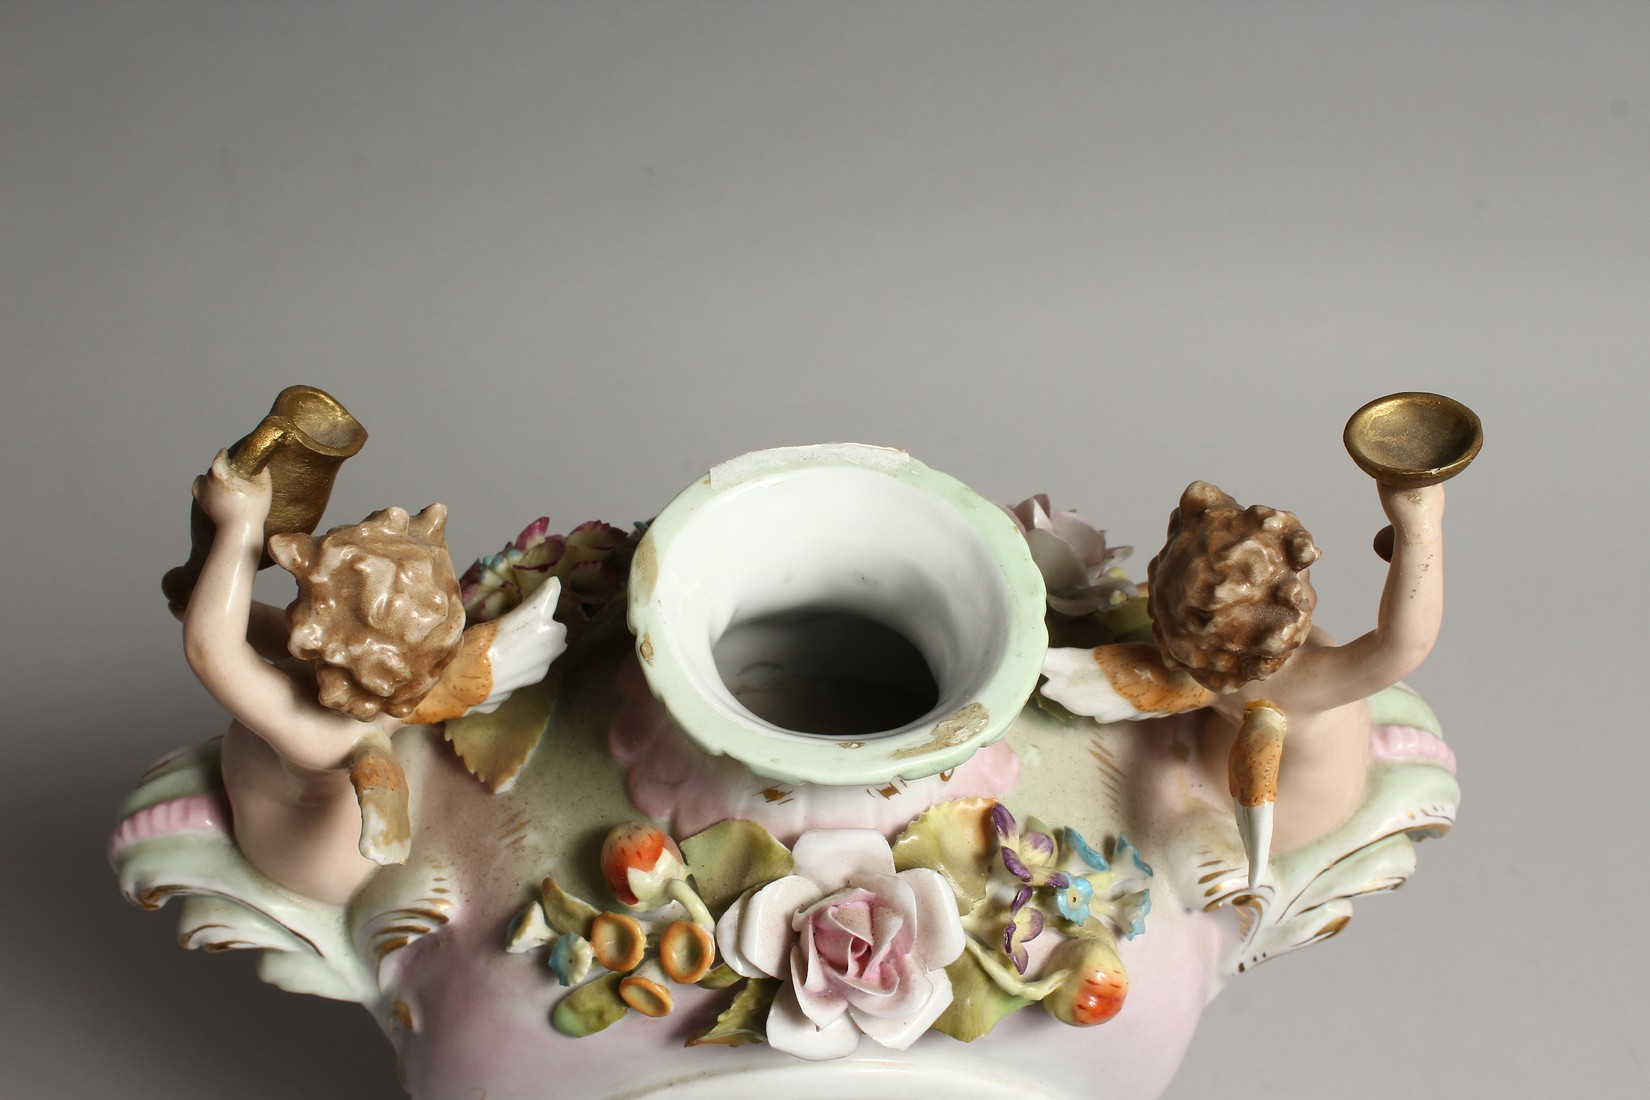 A CONTINENTAL PORCELAIN CUPID AND FLOWER ENCRUSTED CLOCK, with blue and white Roman numerals. - Image 5 of 7